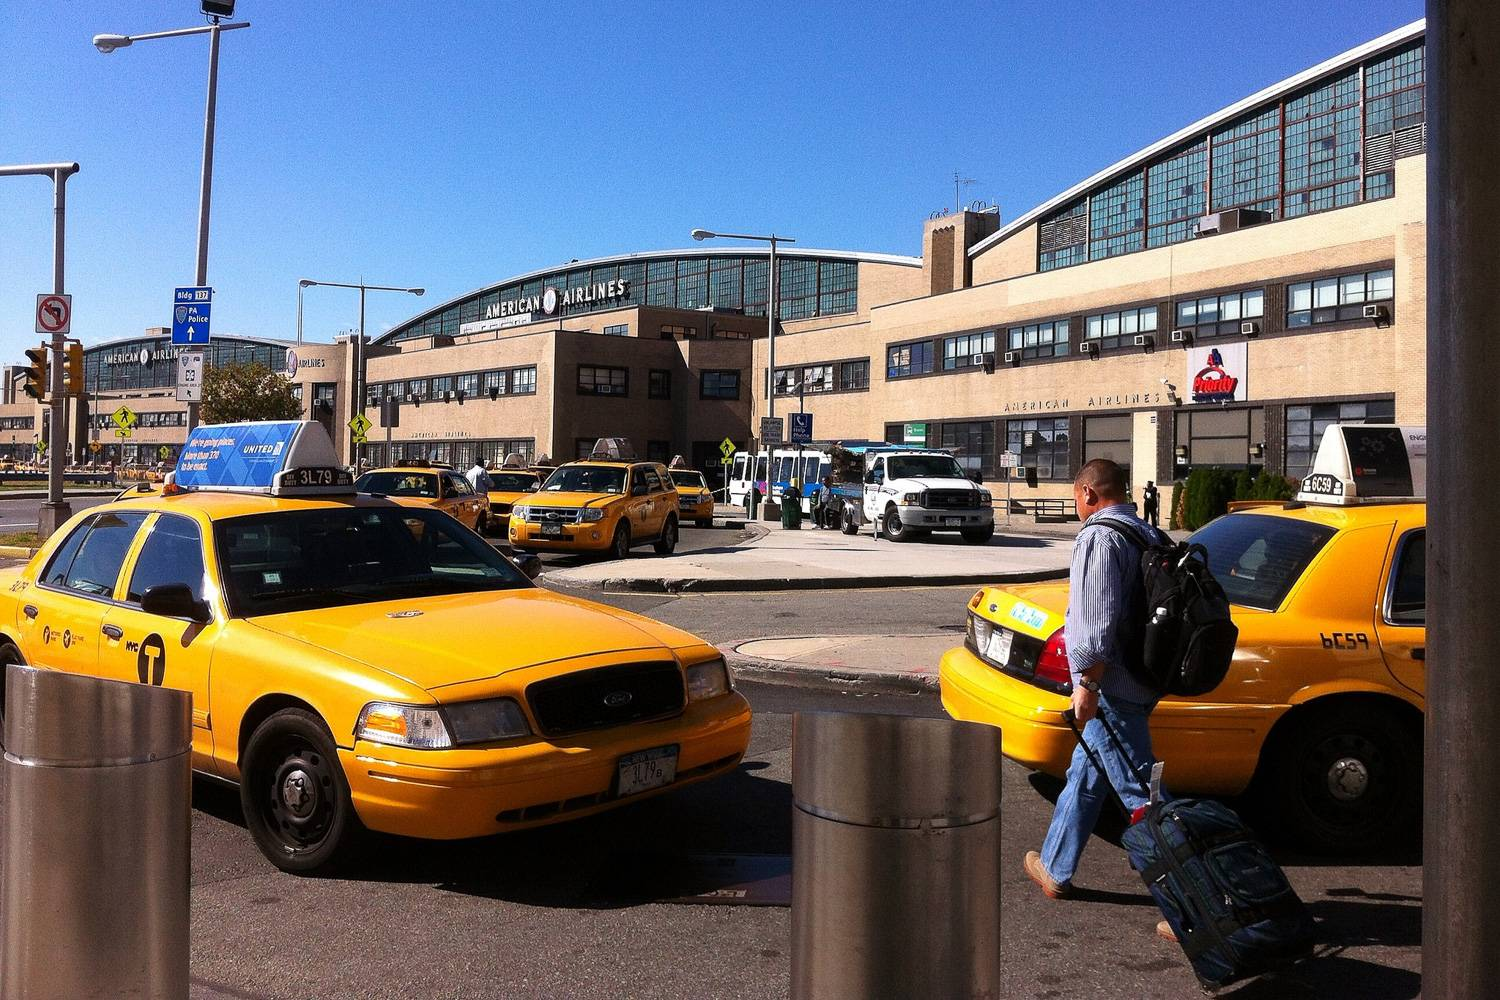 Image of yellow taxis waiting to pick up travelers at the curb of LaGuardia Airport and a traveler with a suitcase.